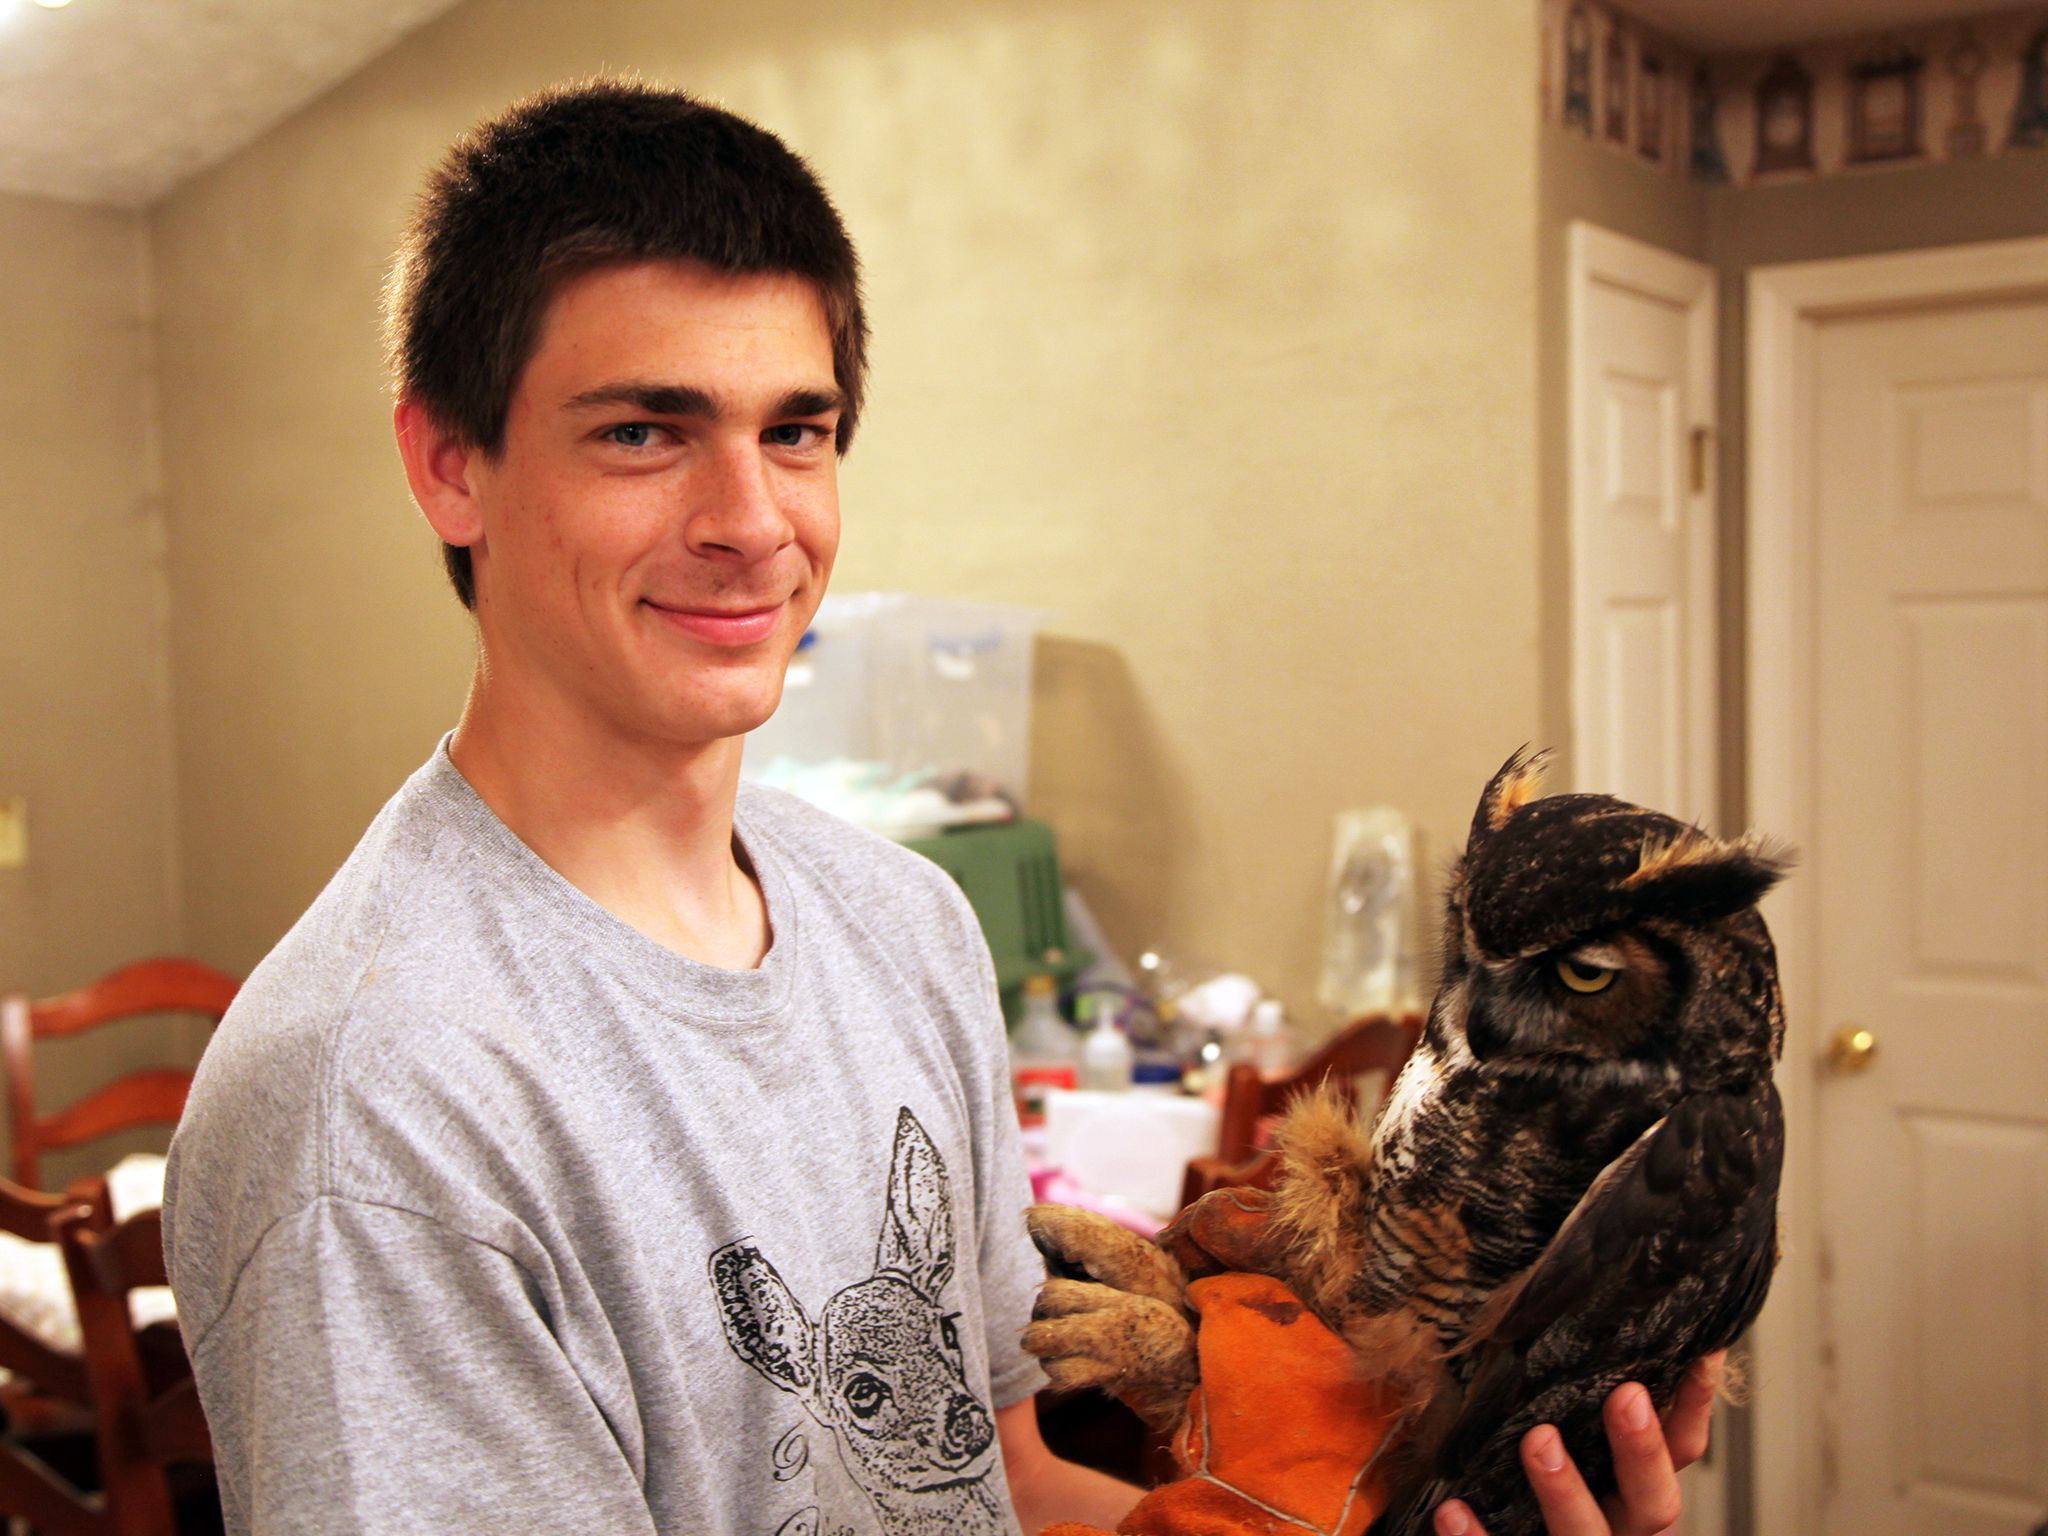 Greenville, Ky.: Grant Allen tends to an injured owl. This image is from Bandit Patrol. [Photo of the day - January 2015]